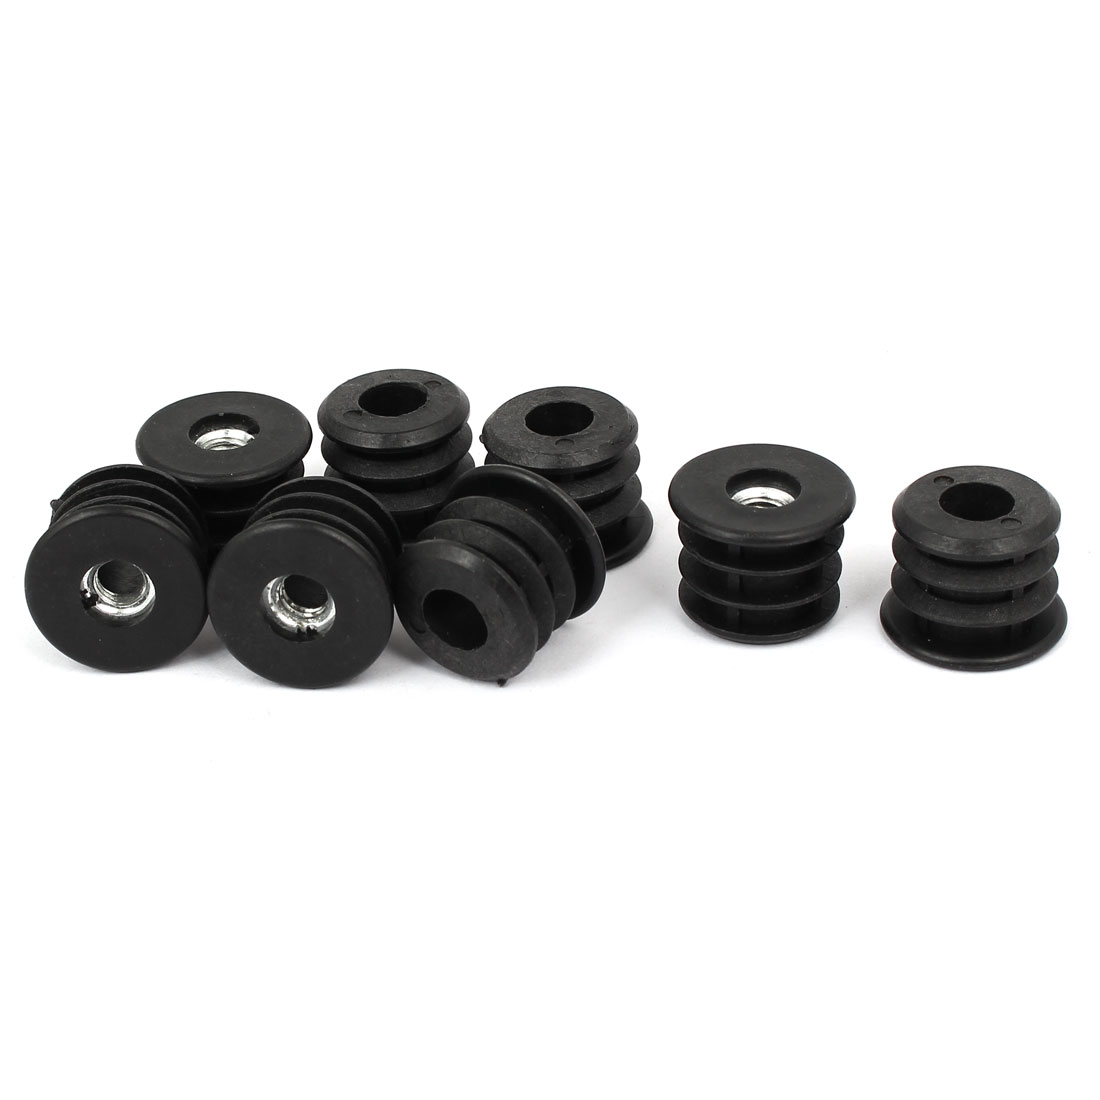 27mm Outer Dia Round Threaded Tubing Tube Insert Blanking End Cap 8PCS